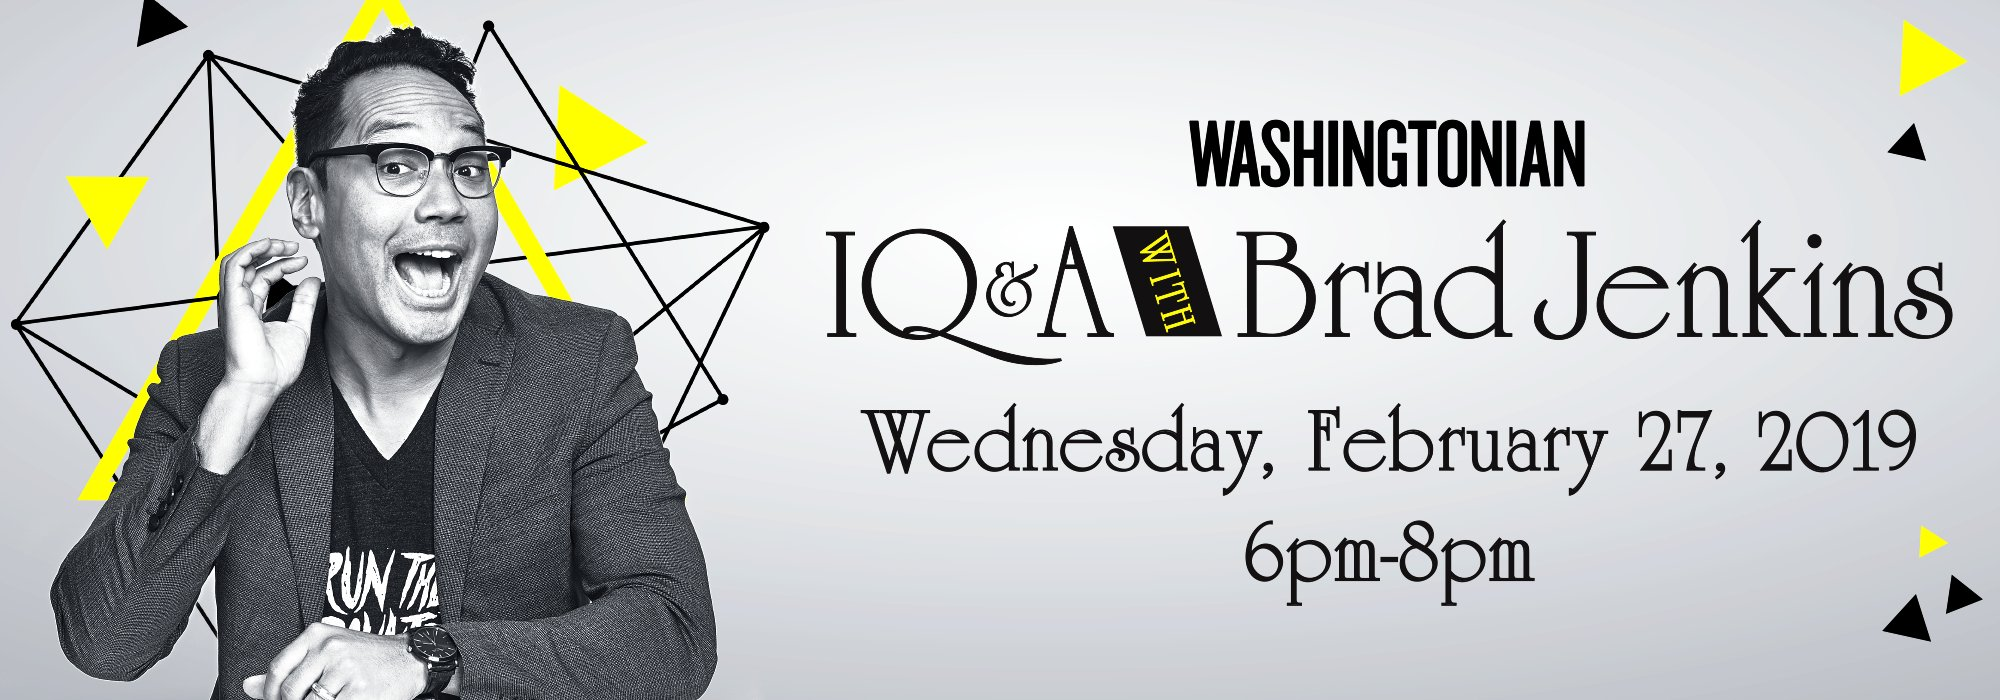 Washingtonian Events : IQ&A with Brad Jenkins, hosted by Brittany Shepherd.